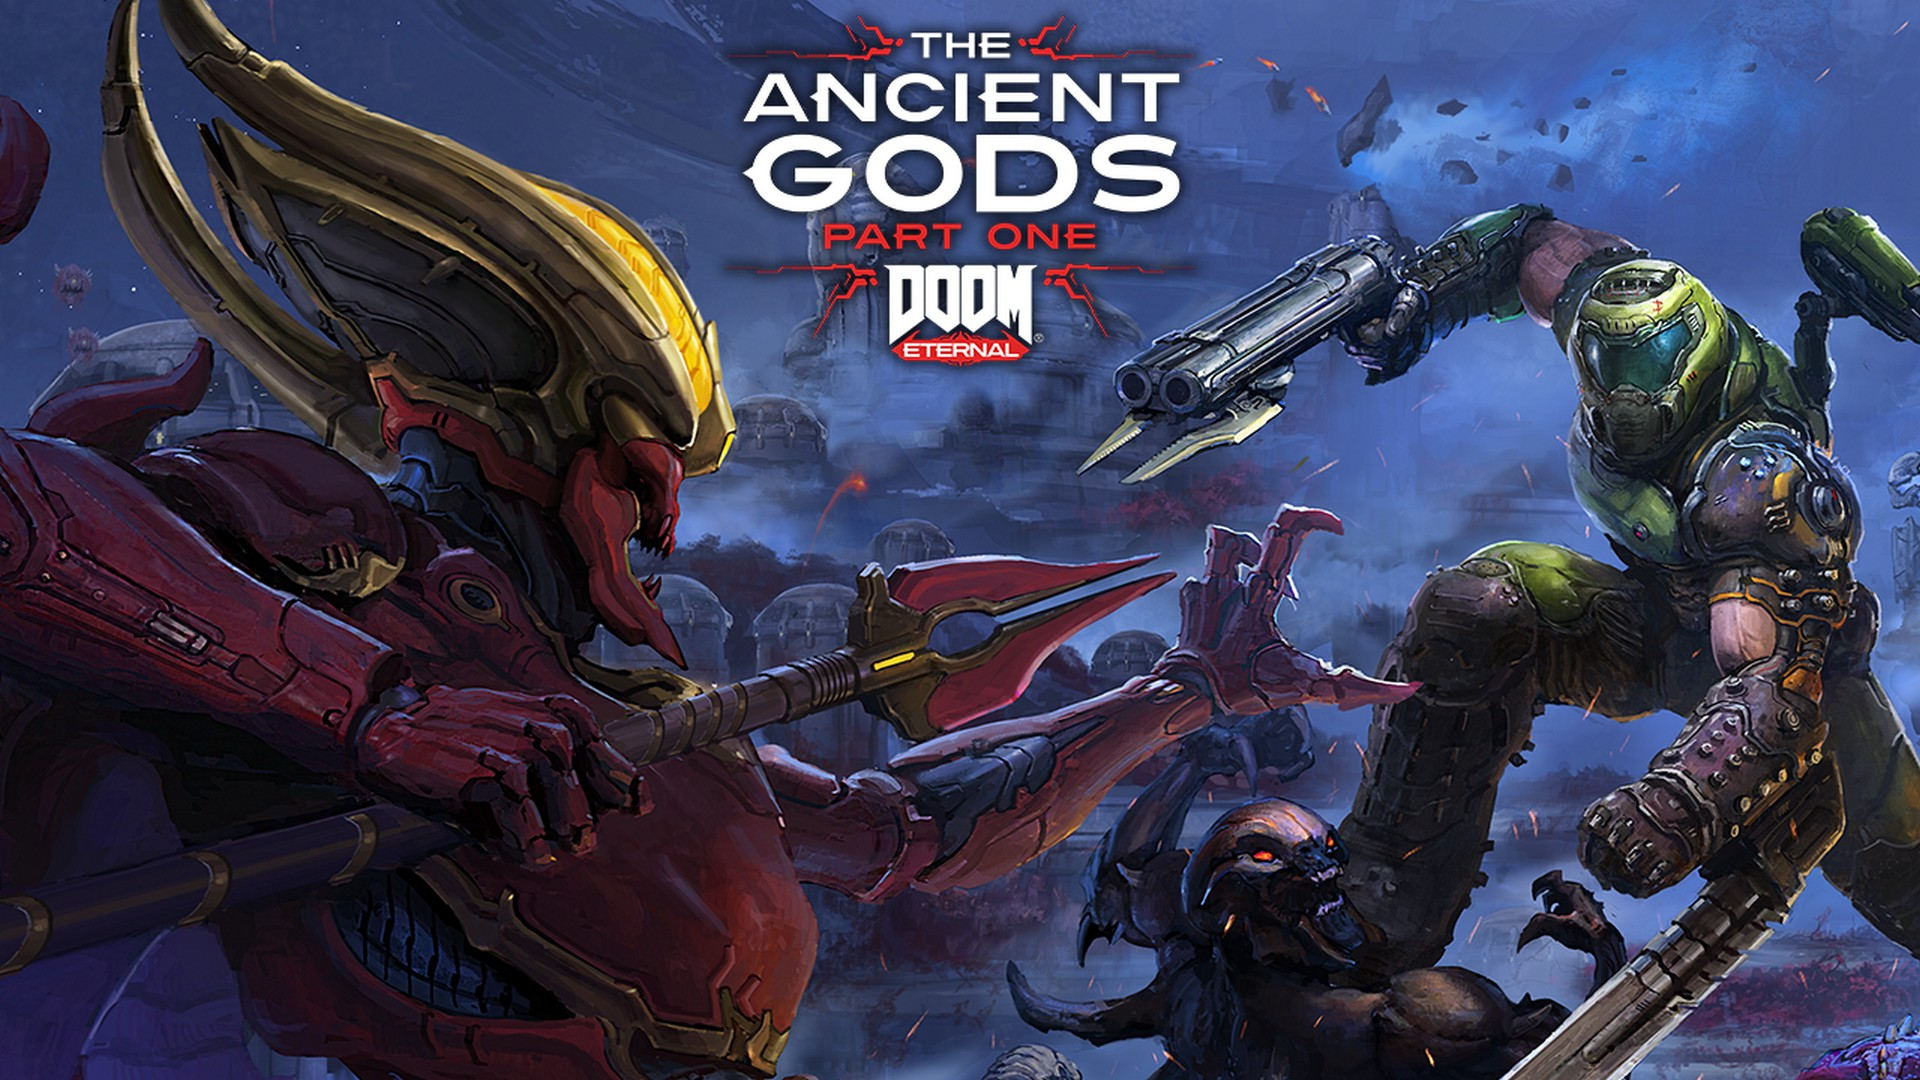 DOOM Eternal: The Ancient Gods – Part One Available Now